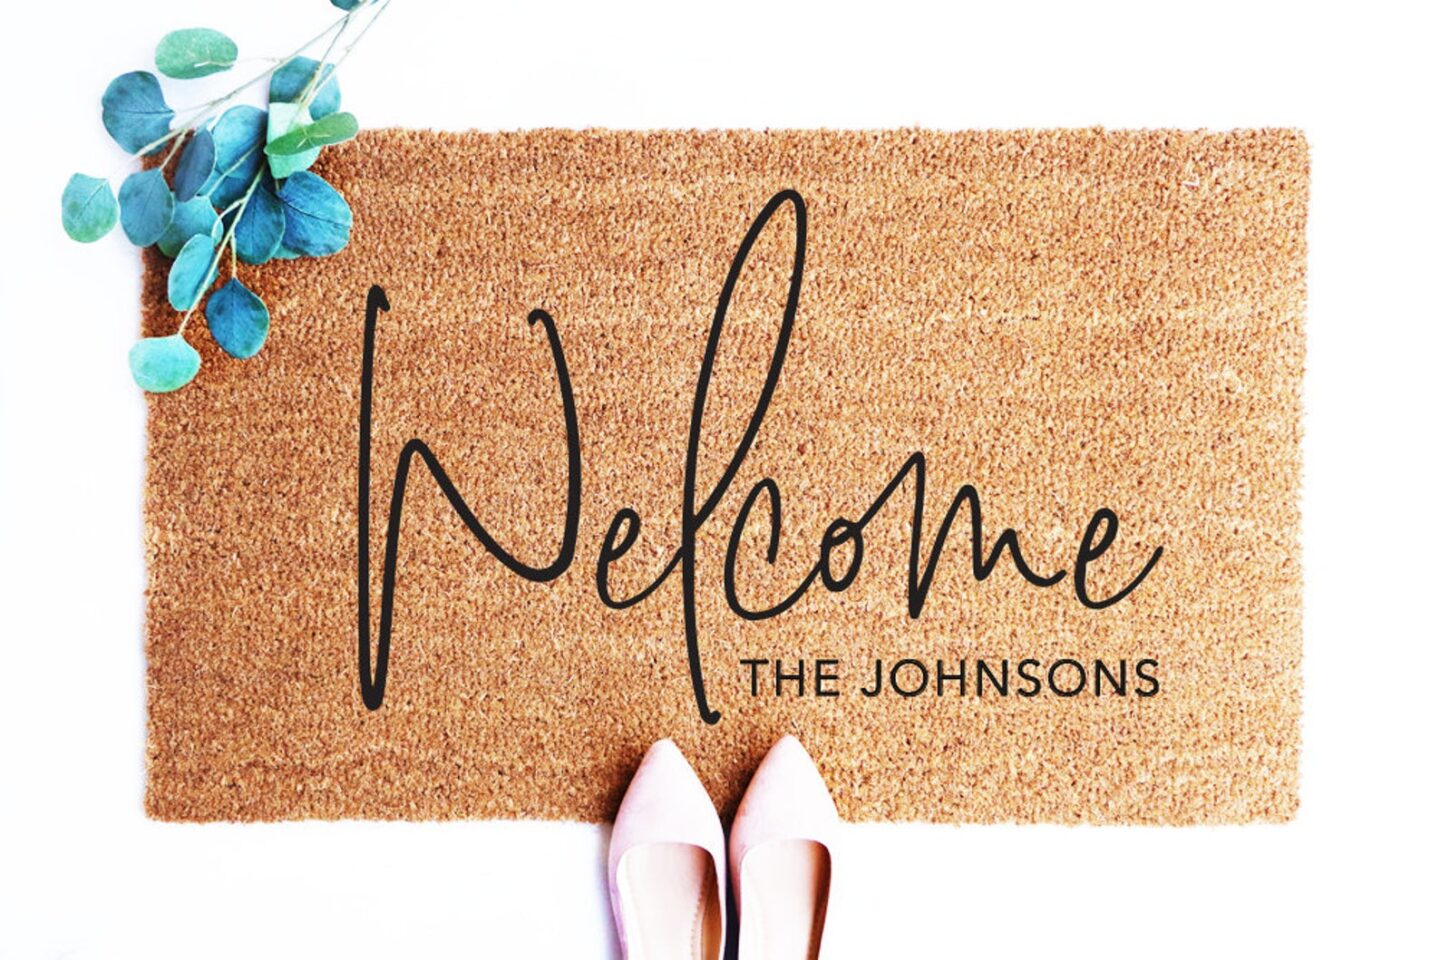 """Welcome mat with """"The Johnsons"""" in the lower right hand corner from an Etsy shop."""